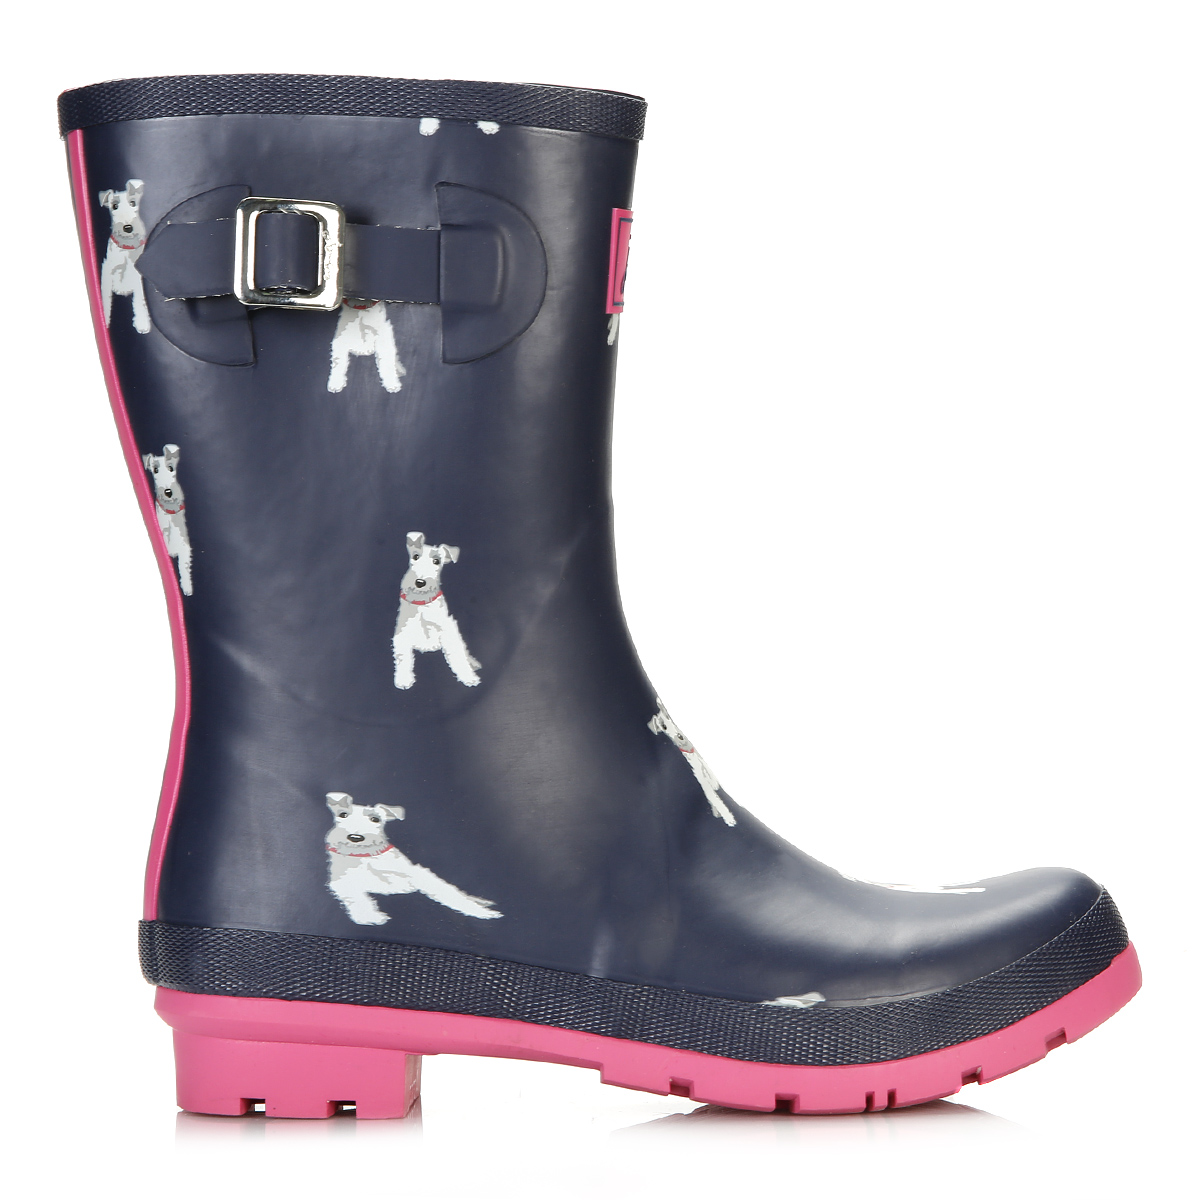 Joules Womens Wellington Boots, Chip Dog Print, Rubber ...